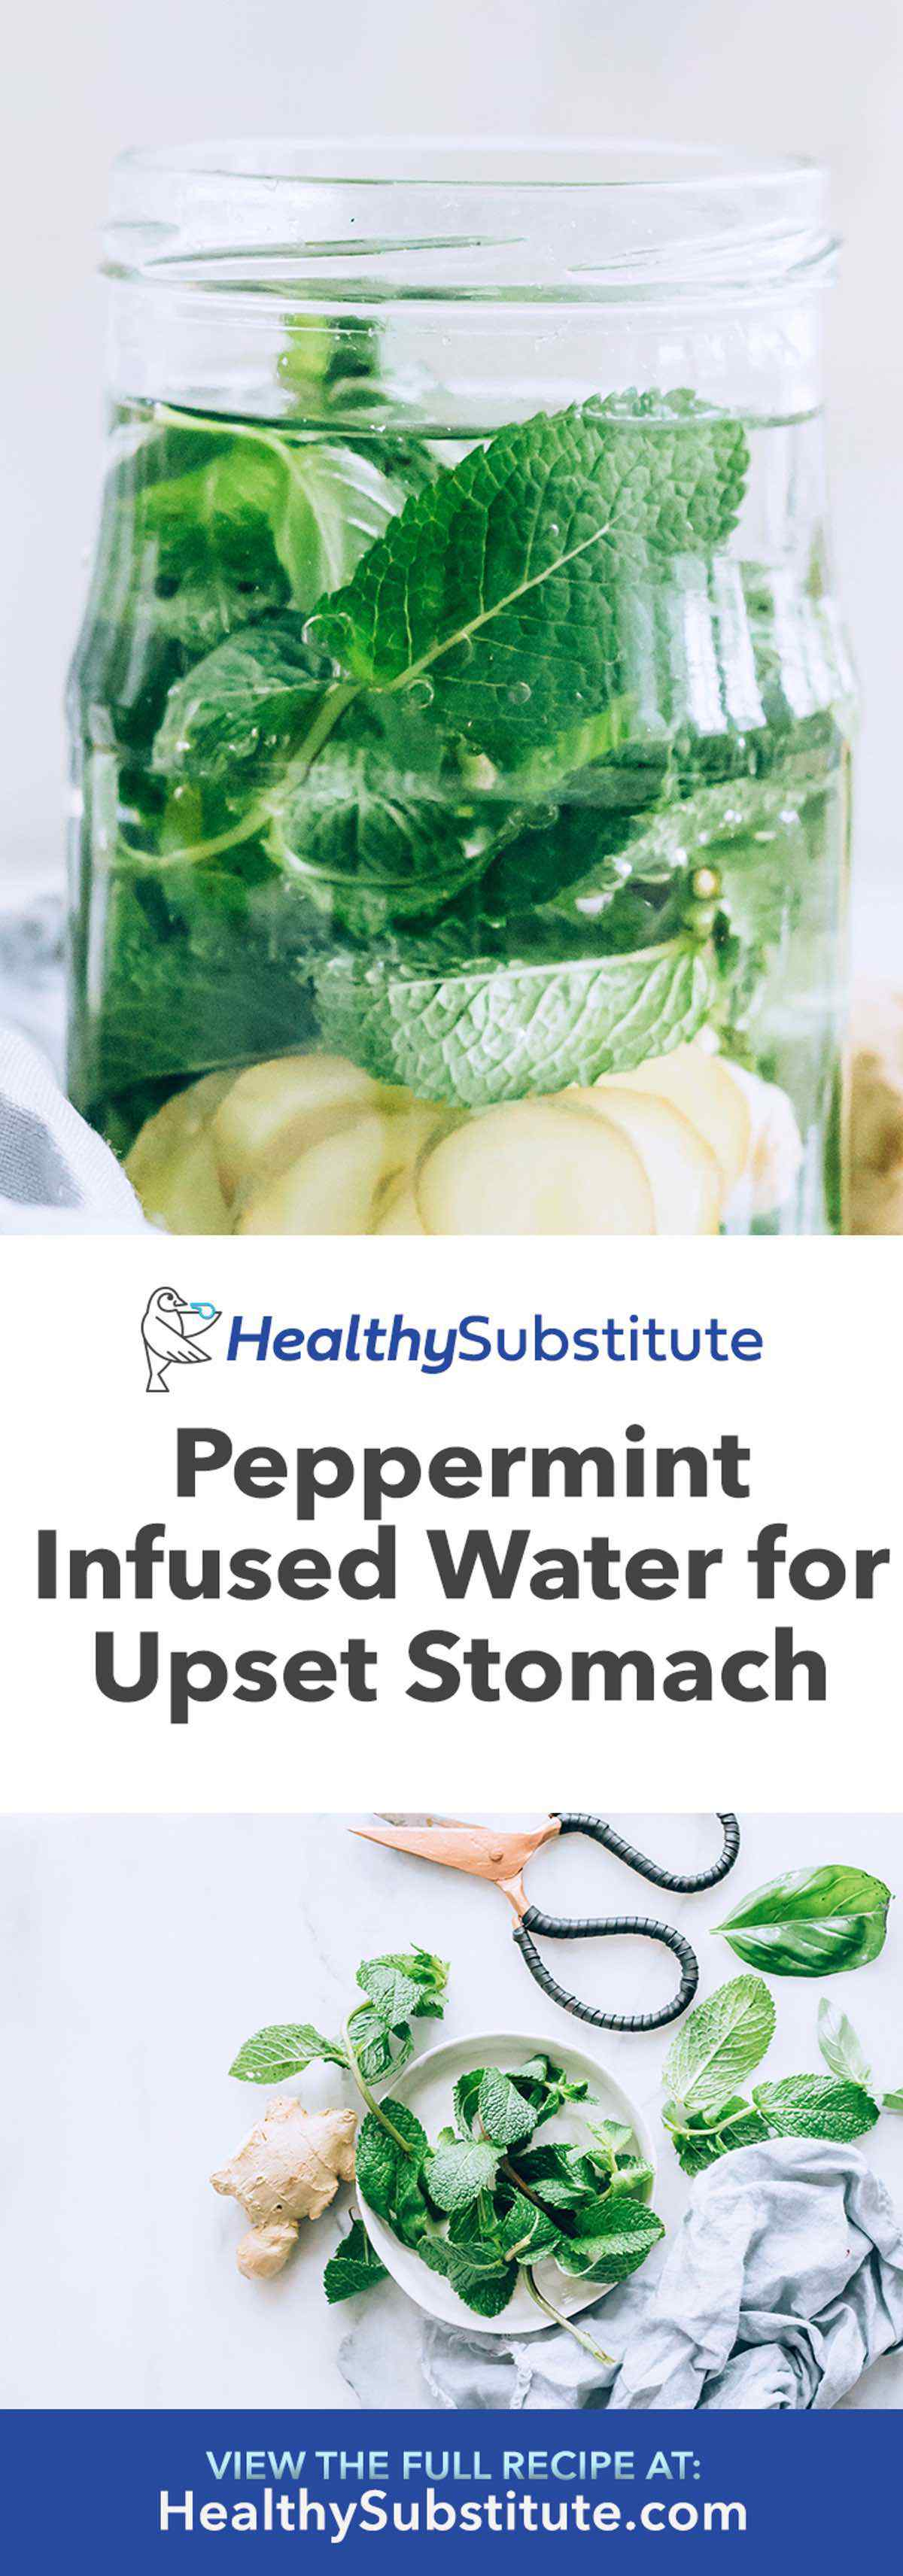 Peppermint Water for Upset Stomach